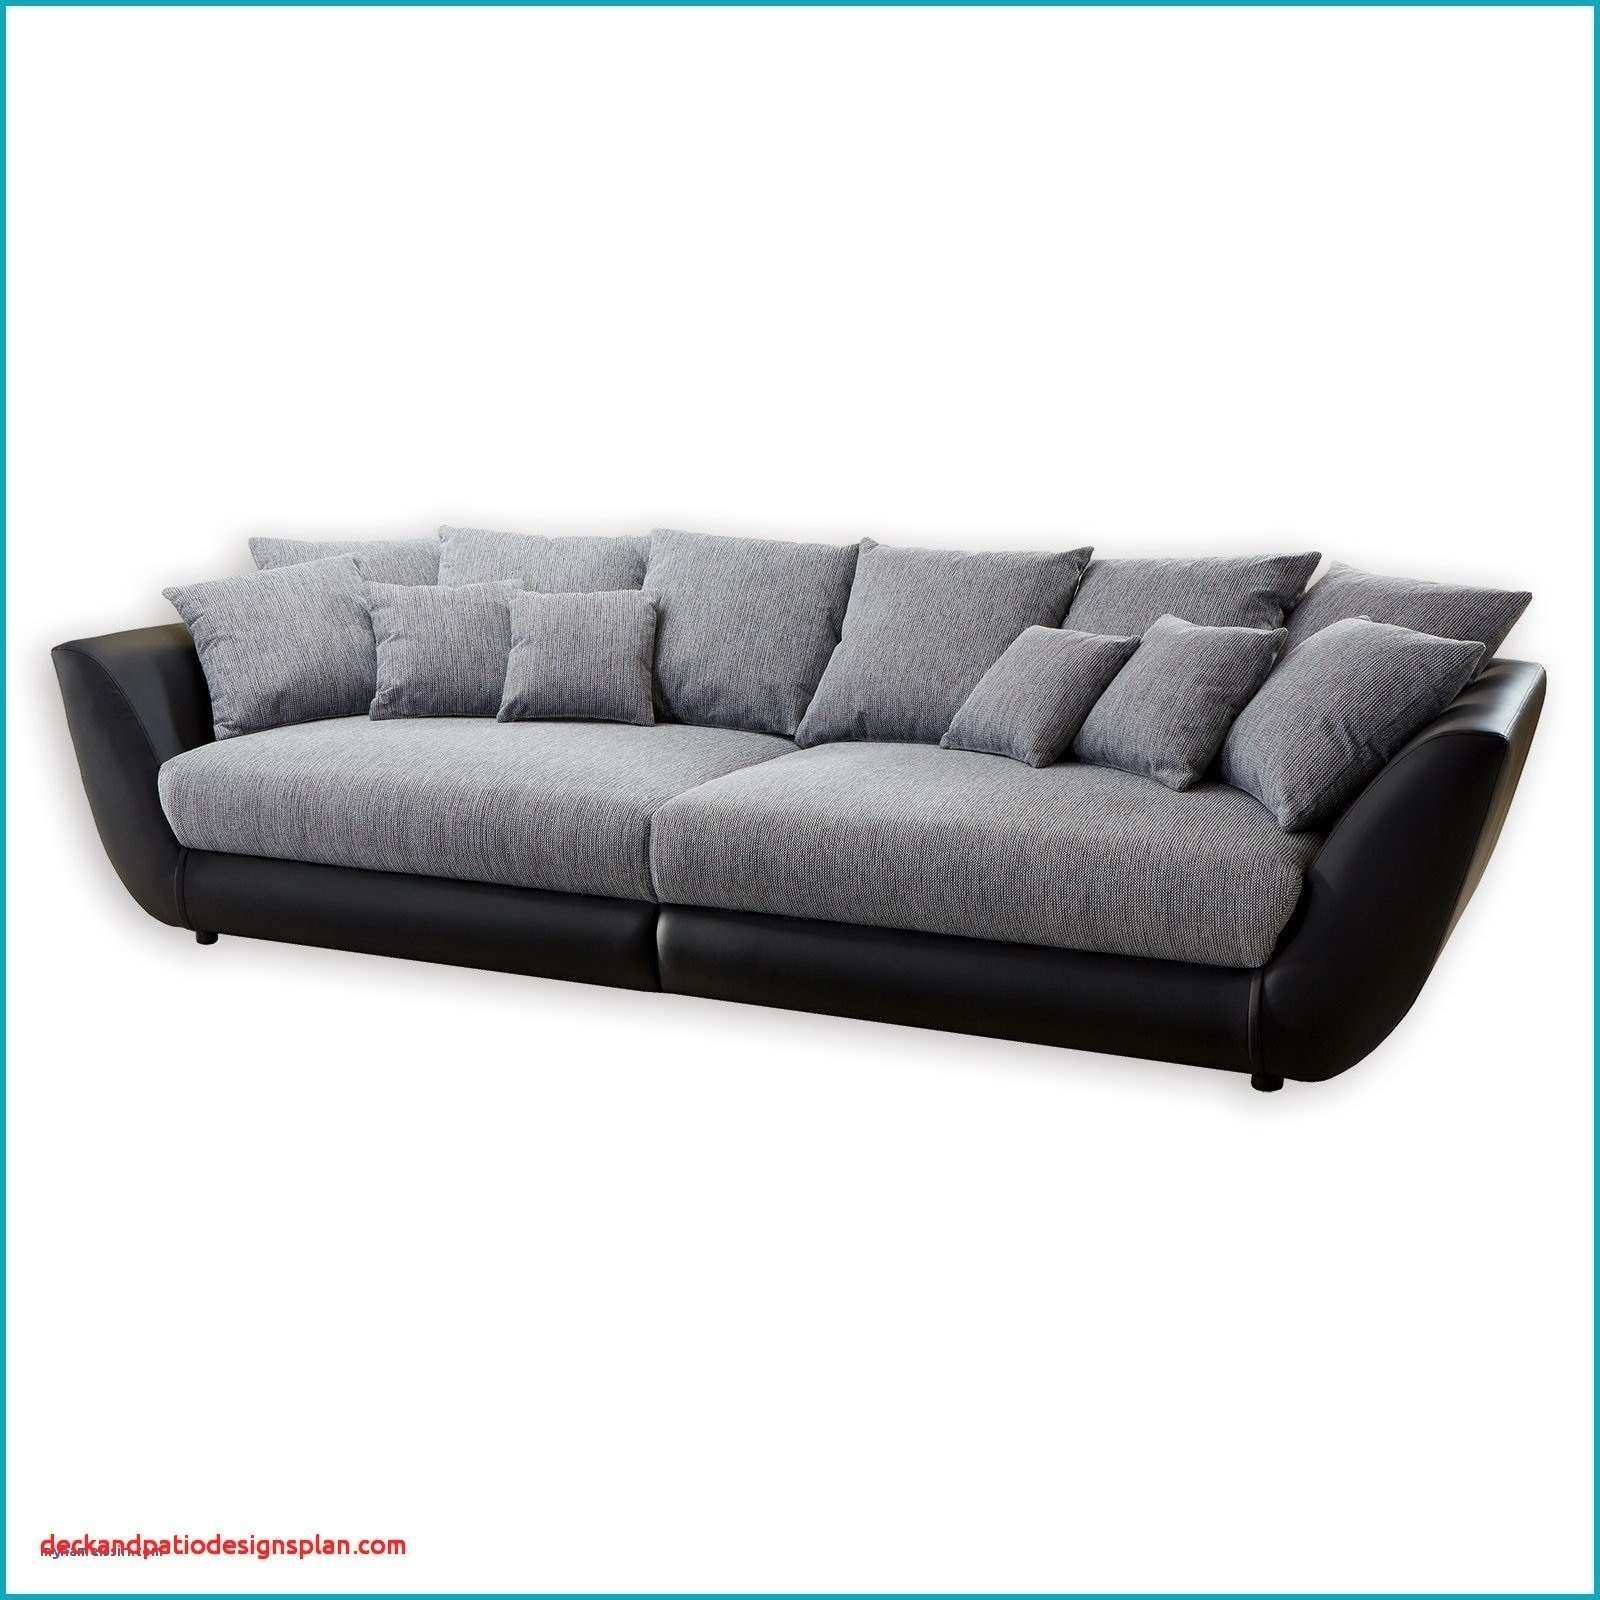 Most Comfortable Sleeper Sofa Design Schlafsofa Ledersofa Schwarz Und Bett Mobel